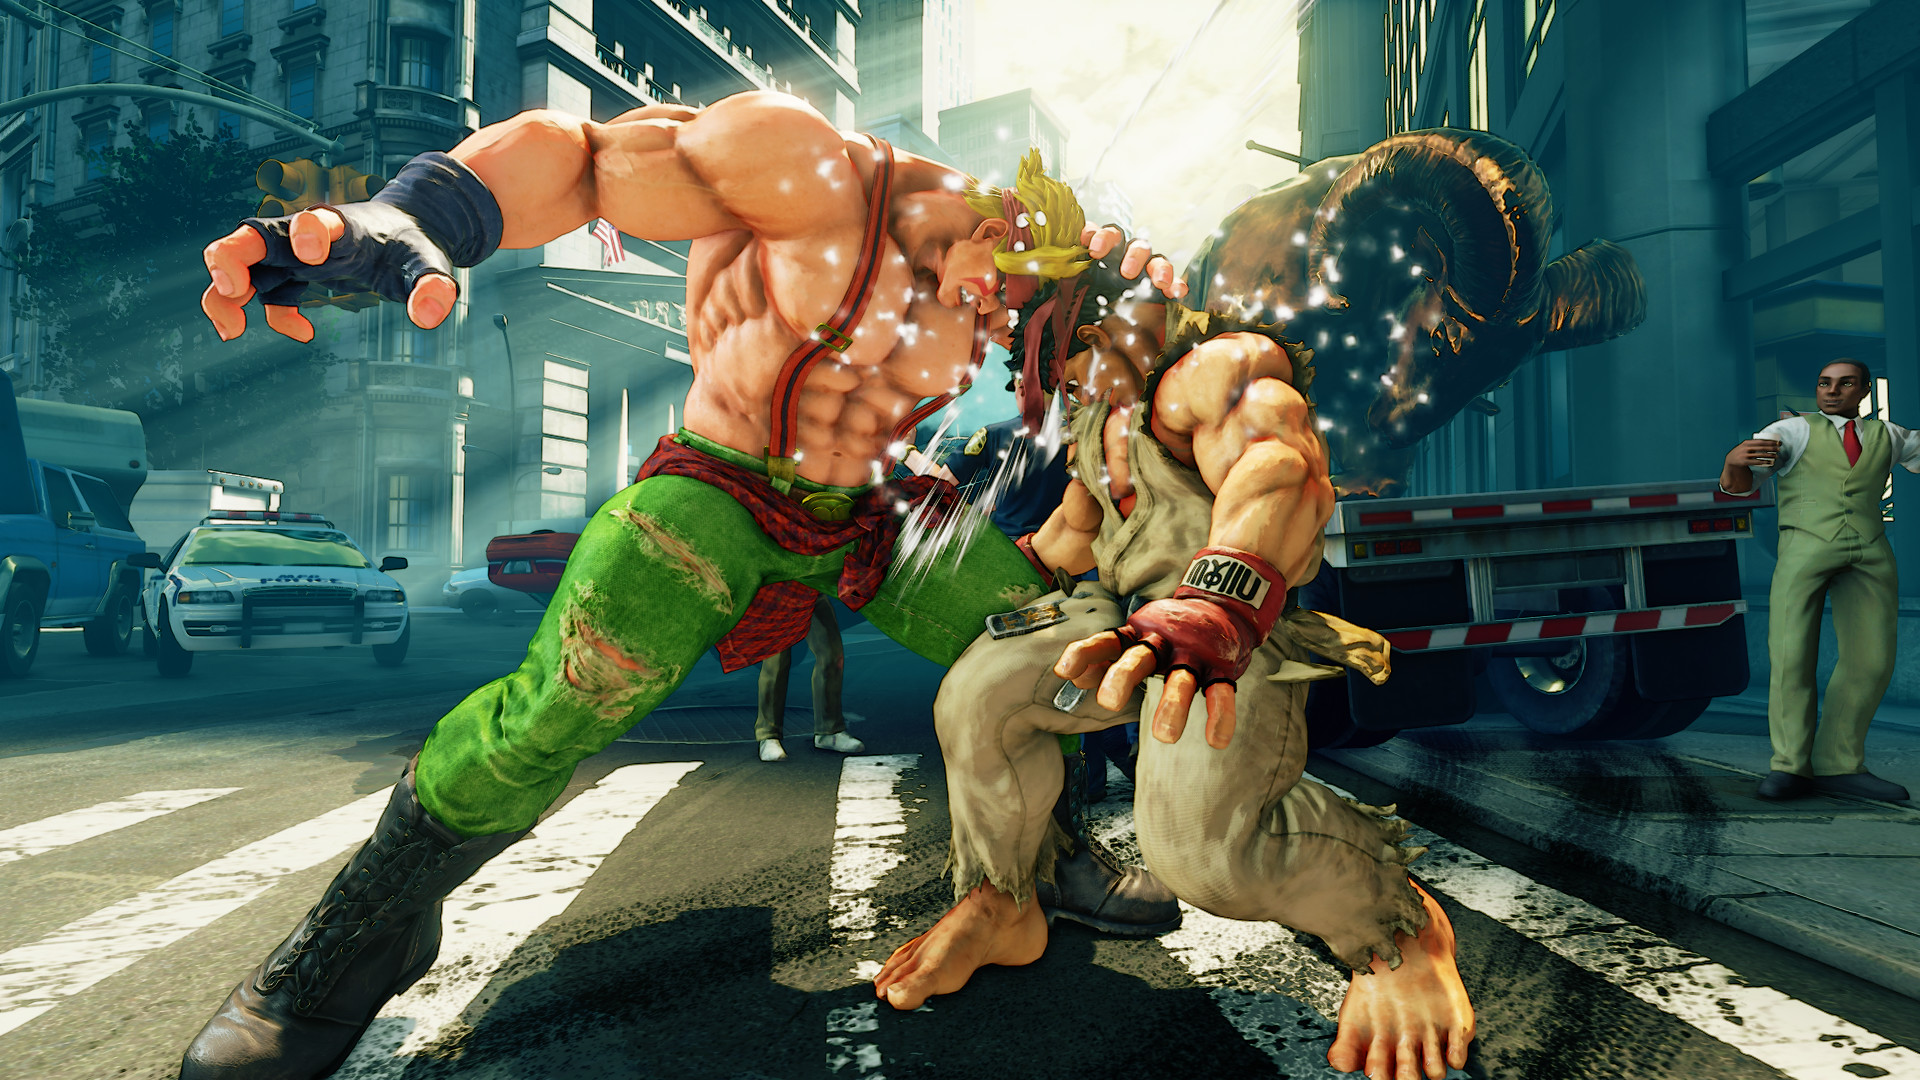 Ryu getting headbutted in Street Fighter 5